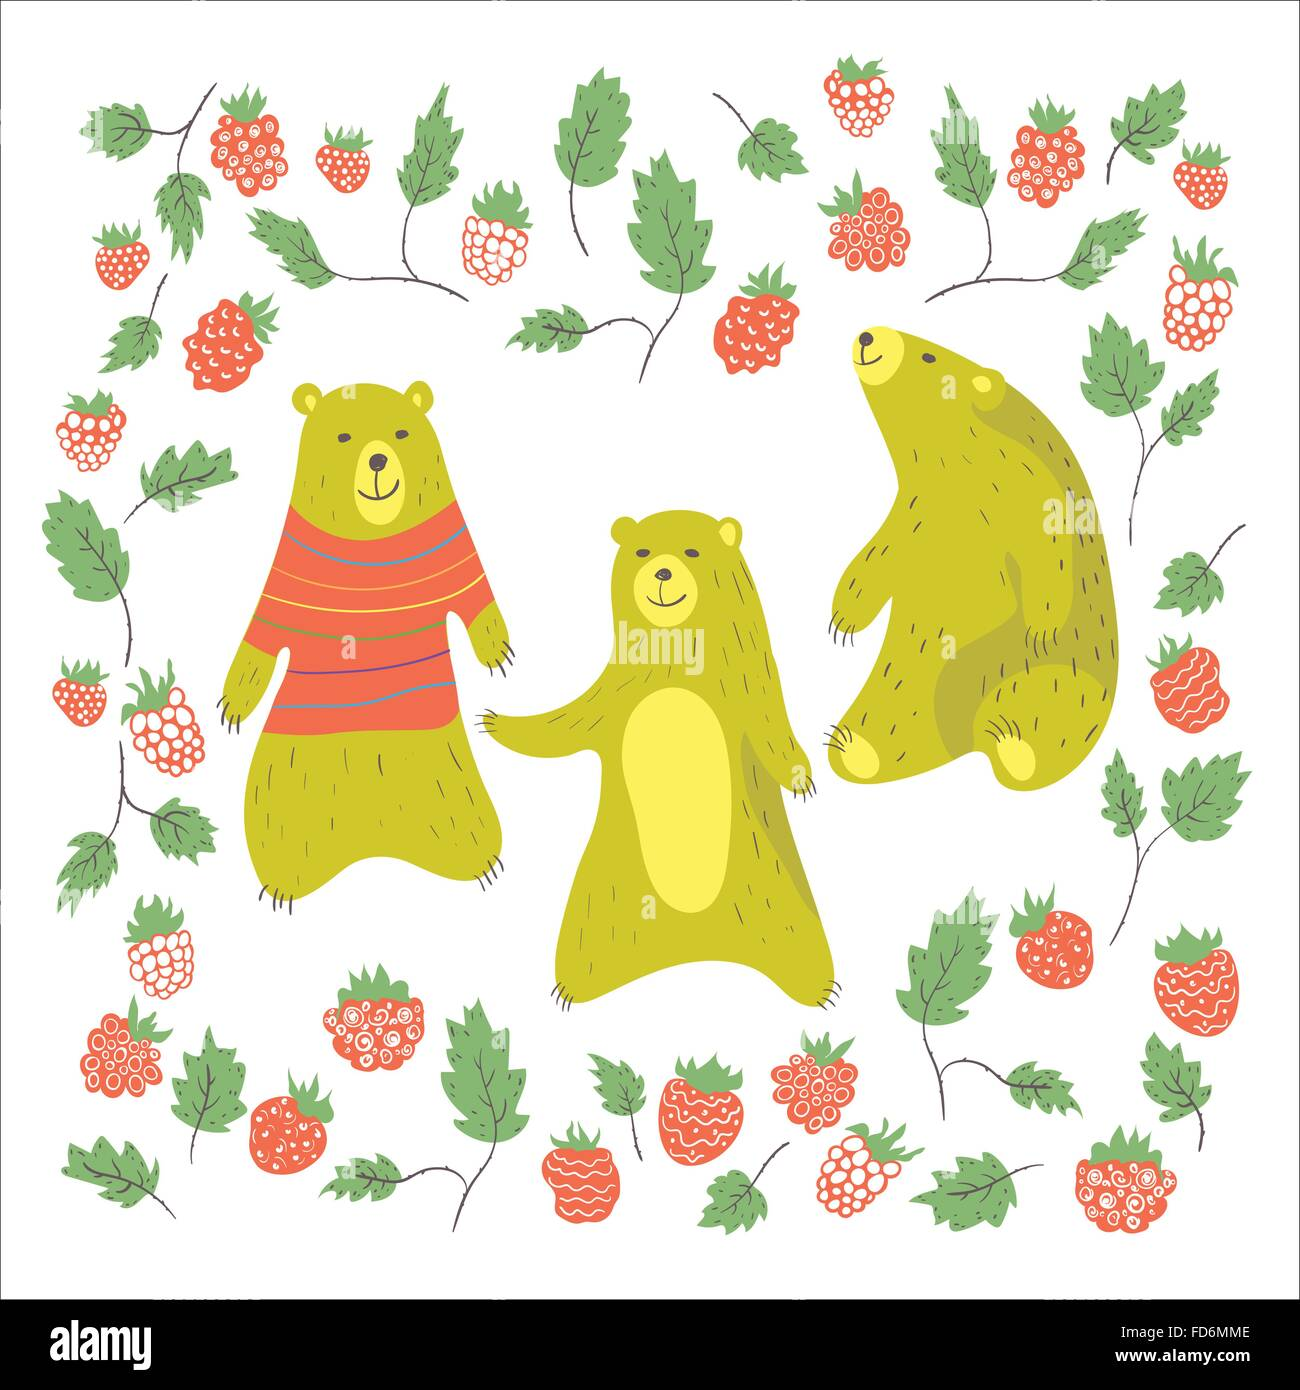 Cute bears and raspberries in cartoon style. Bear in sweater.Vector illustration. - Stock Vector